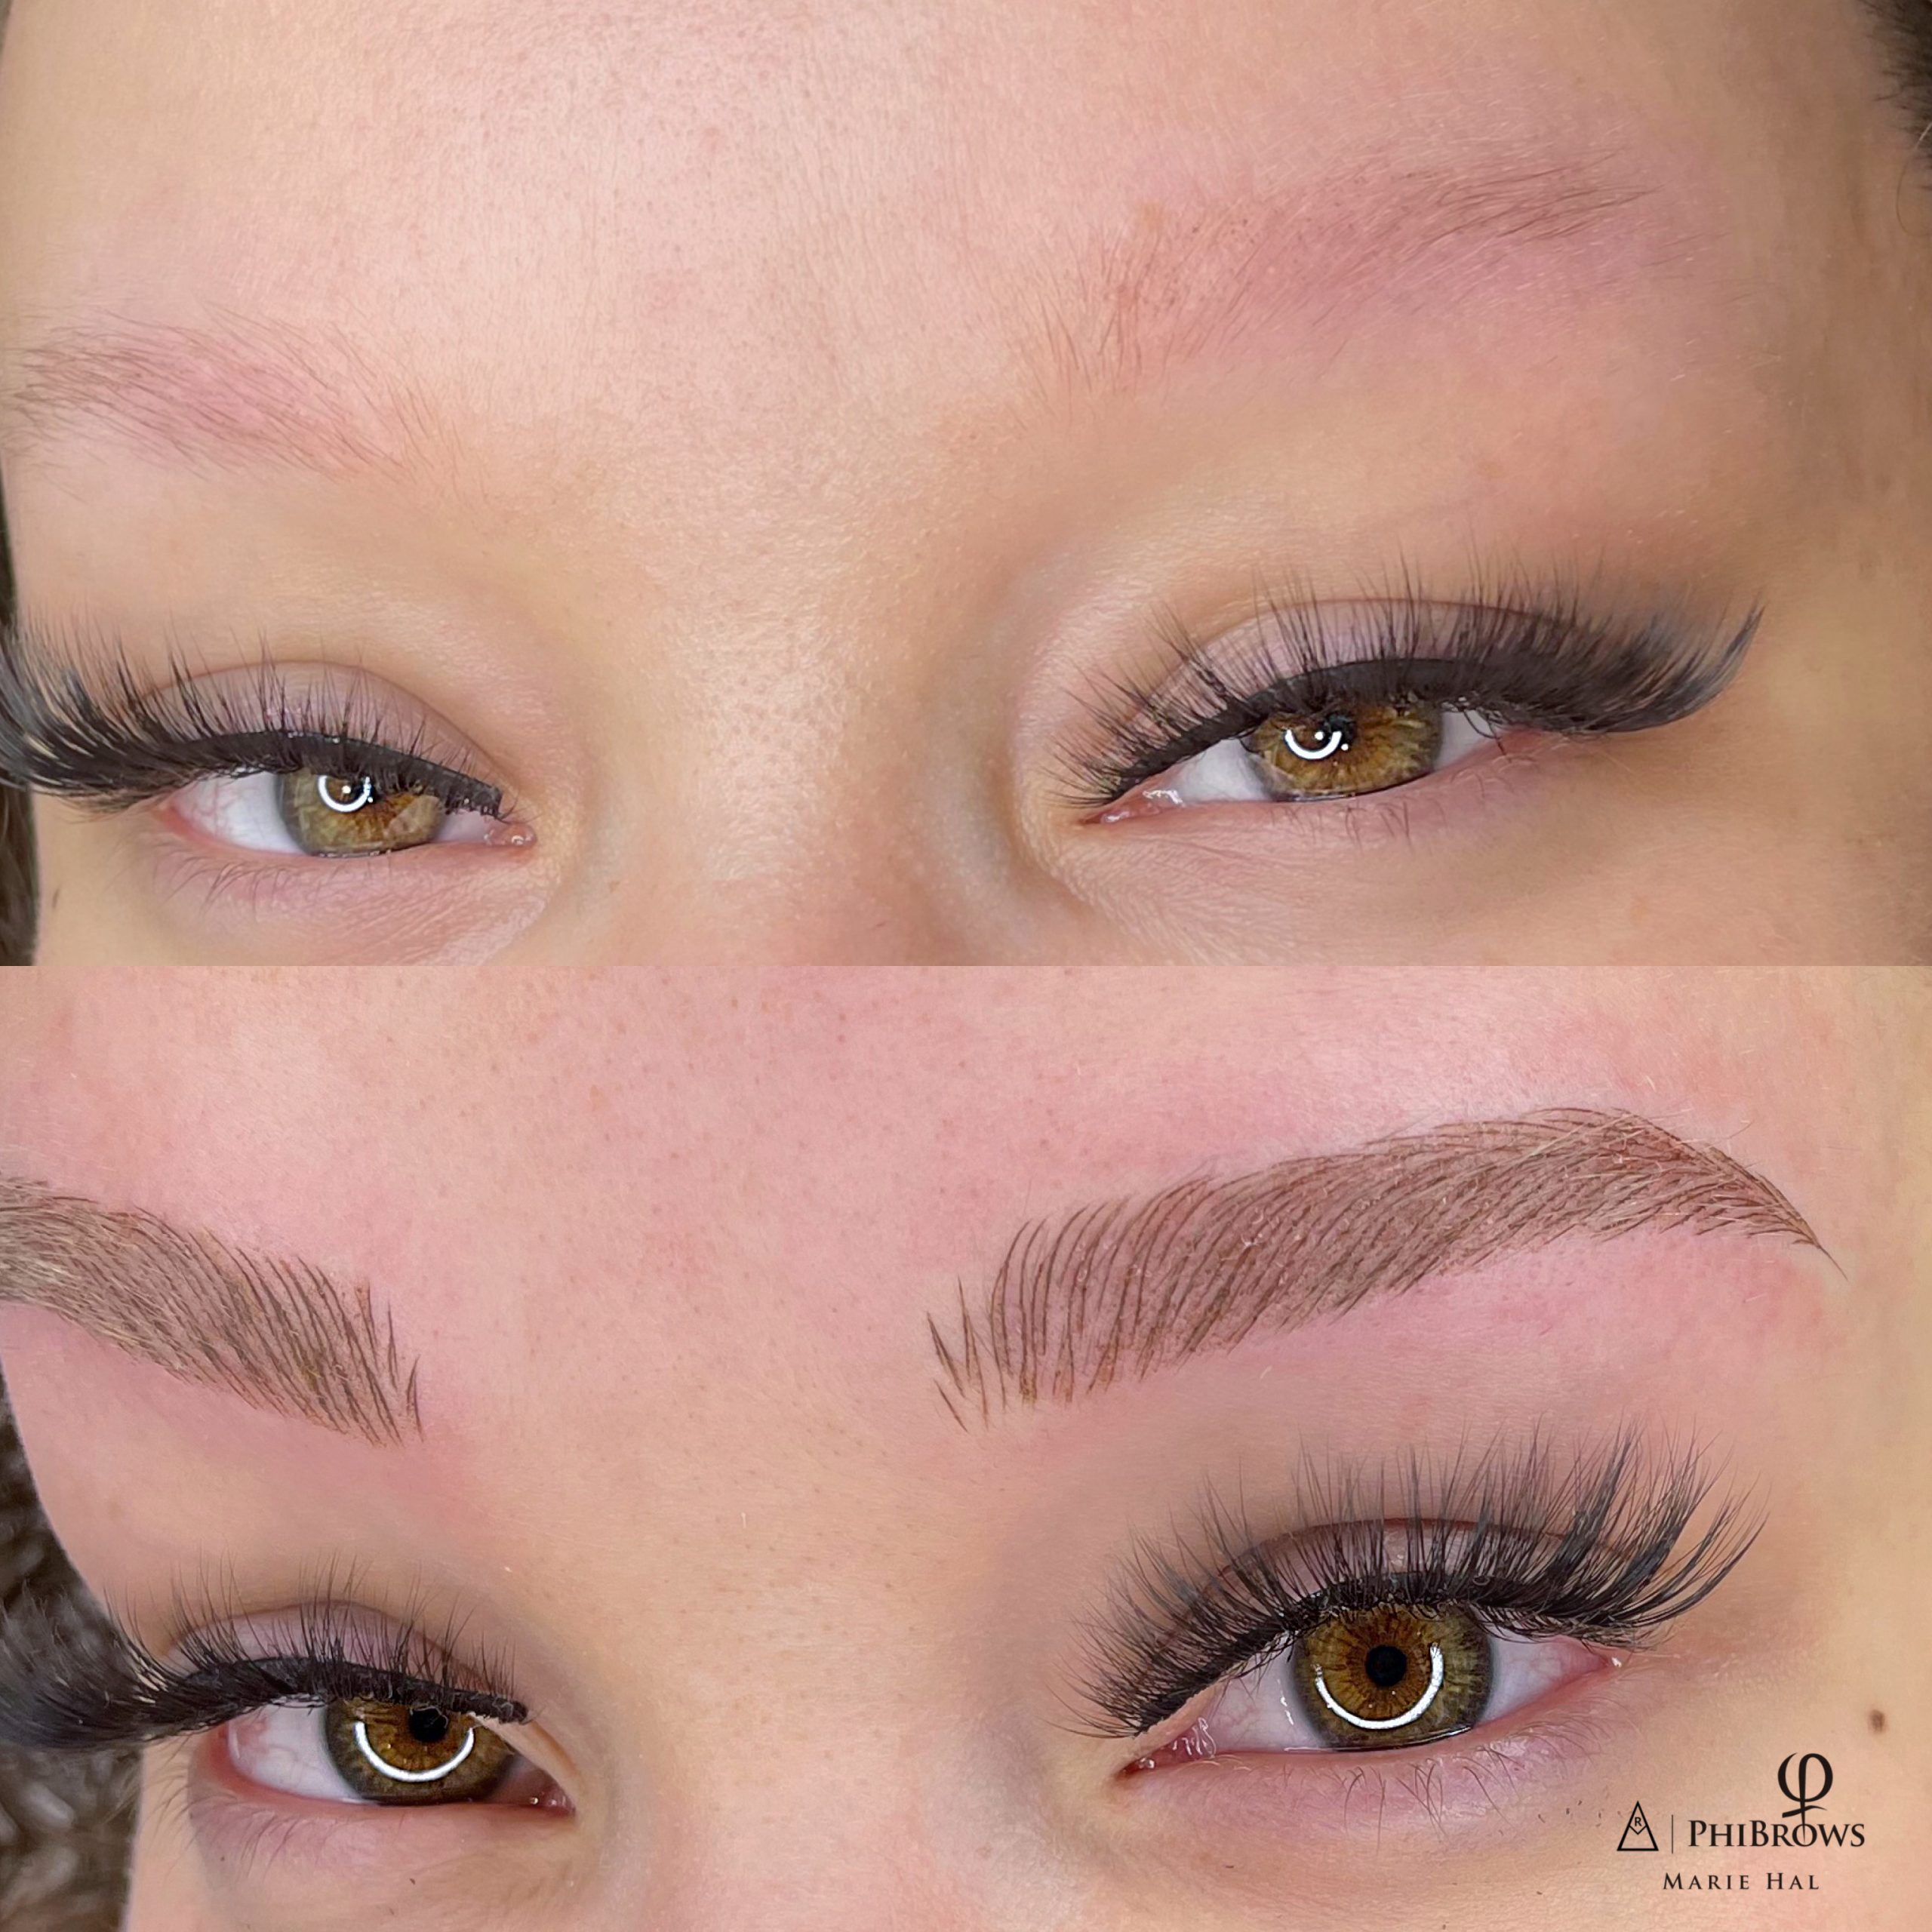 A woman with dream eyebrows as she has had them microbladed.